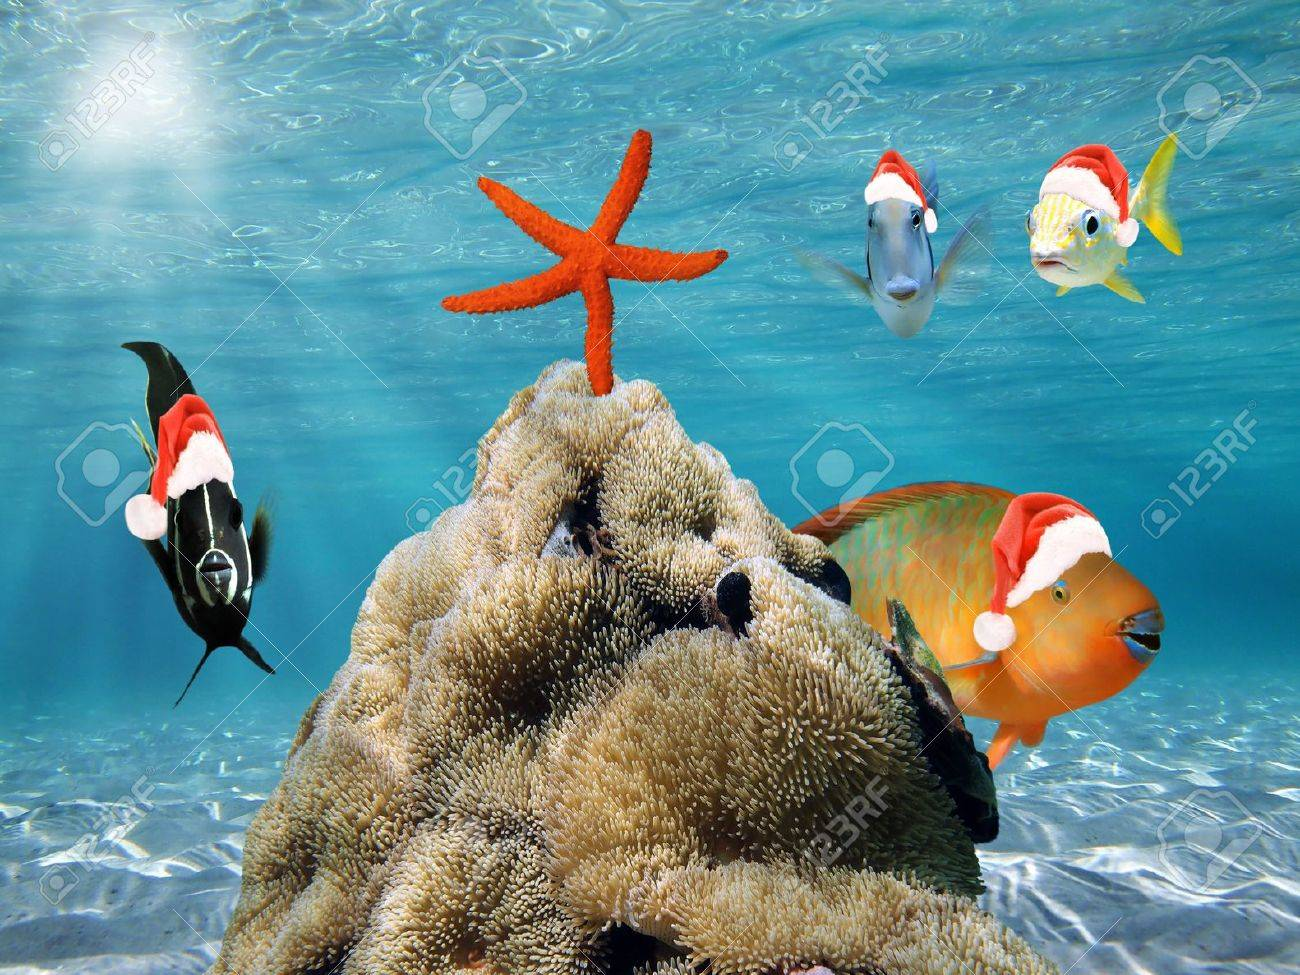 Underwater scene with  fish in red Santa Claus hat and a starfish on top of a pile of sea anemone Stock Photo - 16615734